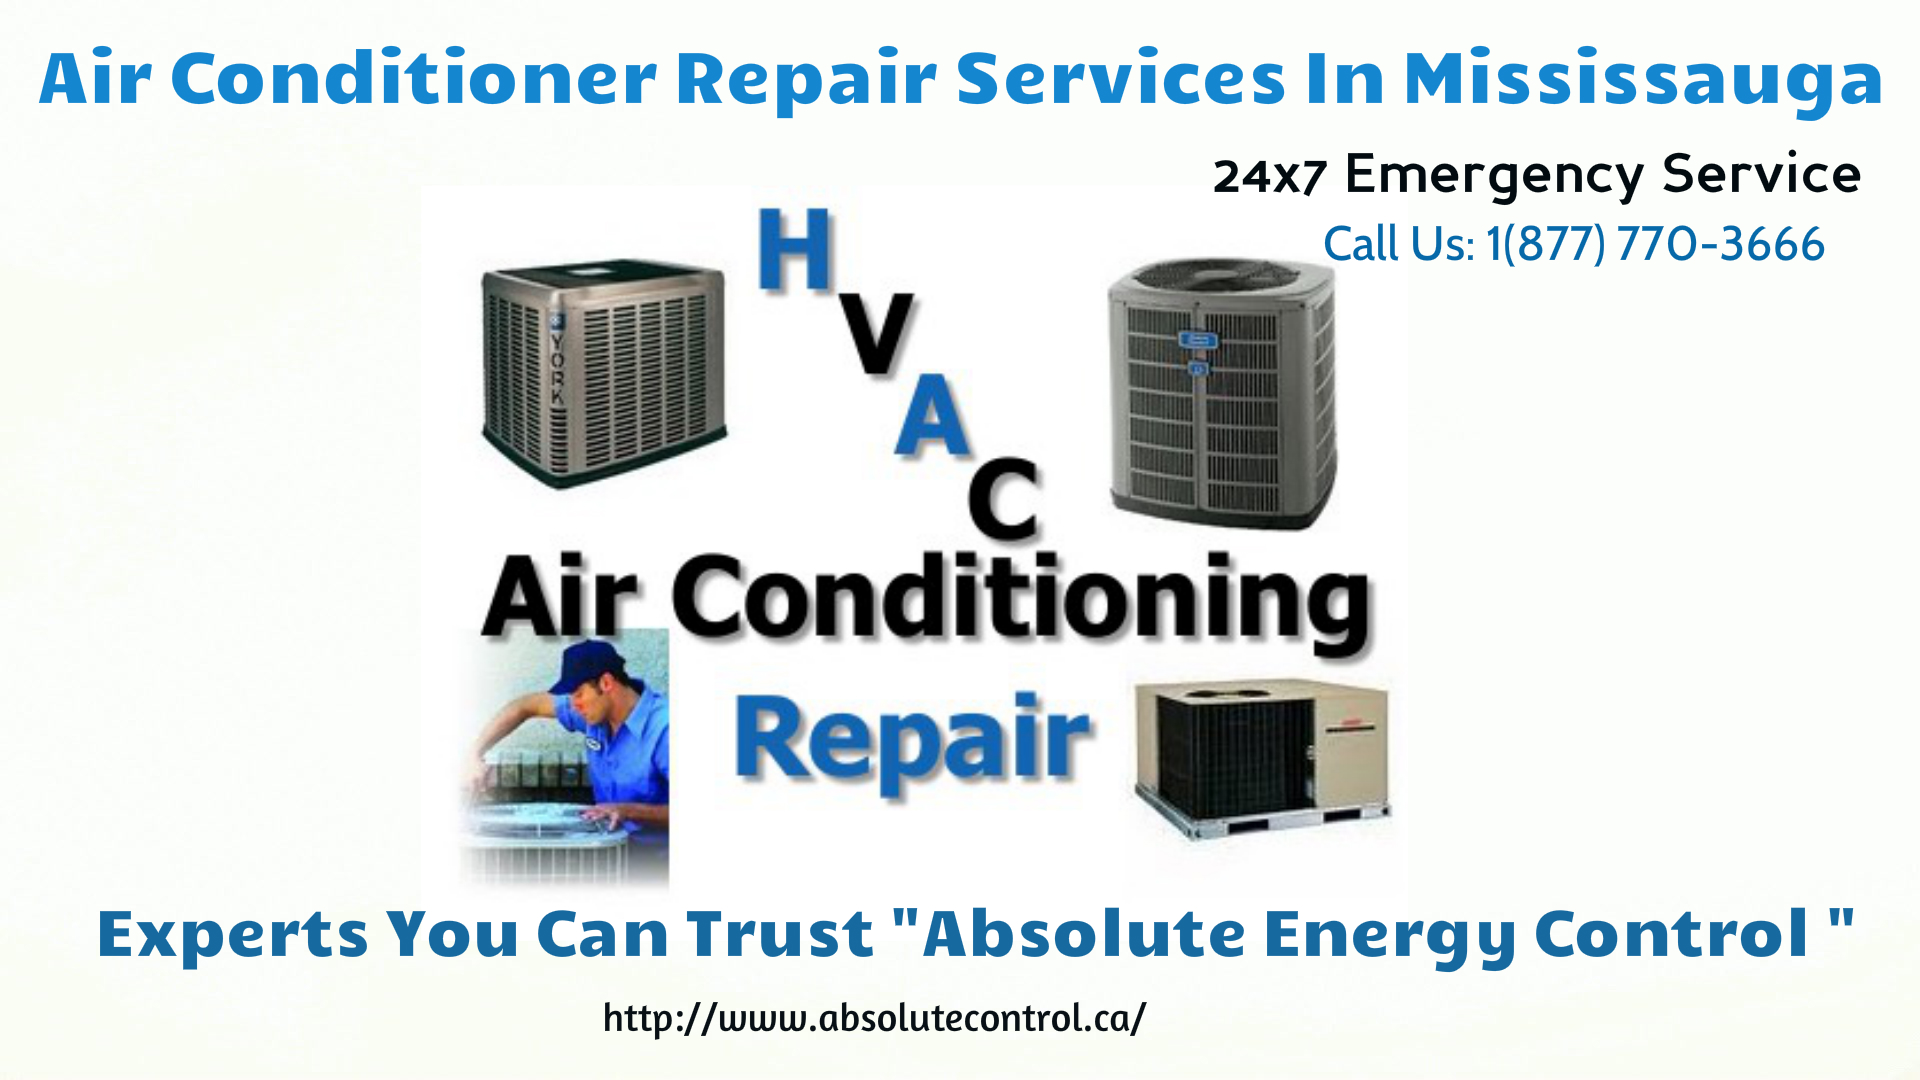 #0E4383 Air Conditioner Repair Mississauga Free Images At Clker  Highly Rated 7889 Air Conditioner Installation Mississauga wallpapers with 1920x1080 px on helpvideos.info - Air Conditioners, Air Coolers and more